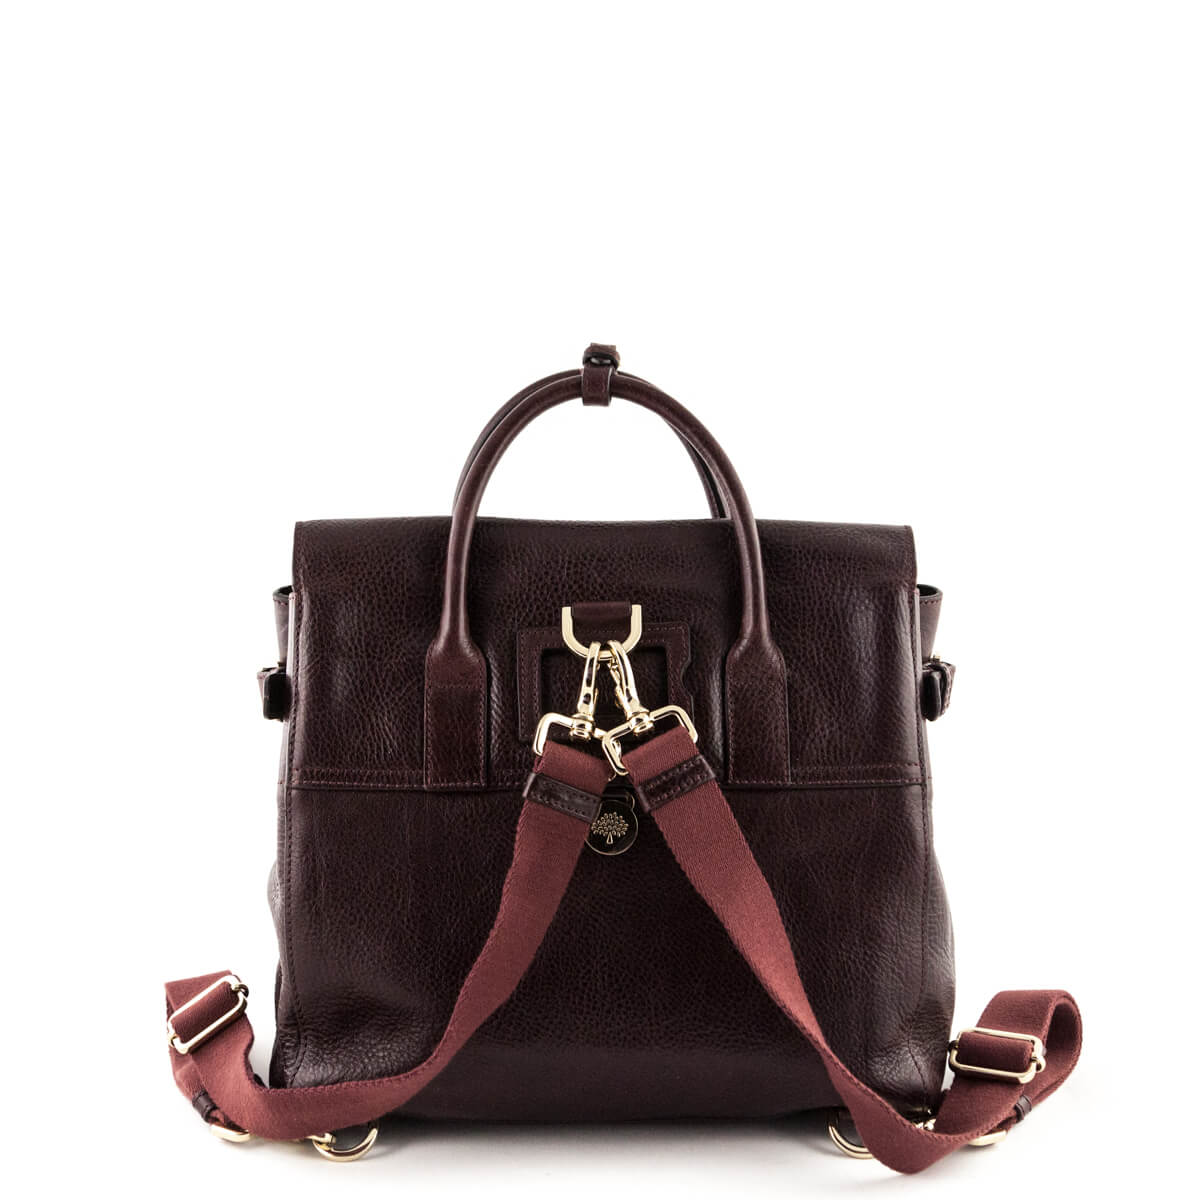 ... Mulberry Oxblood Cara Delevingne Convertible Backpack - LOVE that BAG -  Preowned Authentic Designer Handbags ... 54c9a4fe3f